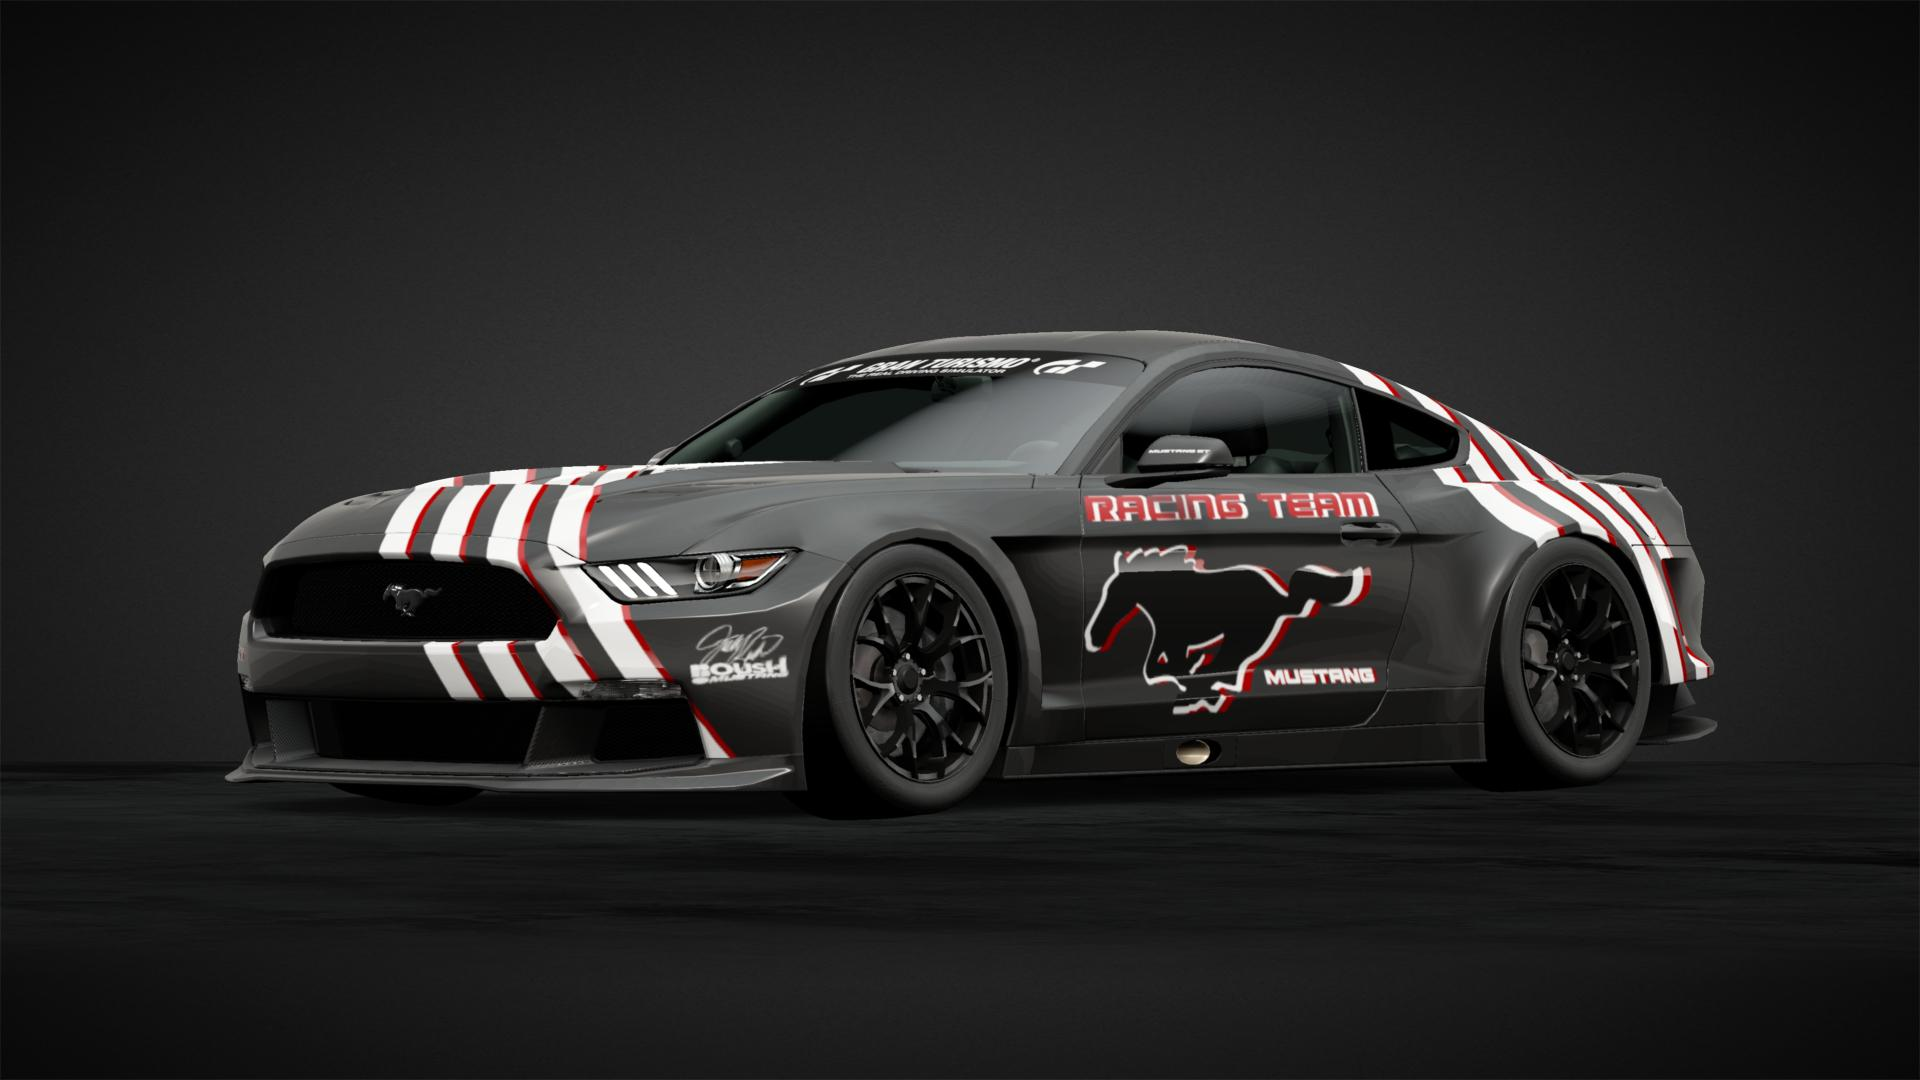 Mustang gt car livery by m22600 community gran turismo sport